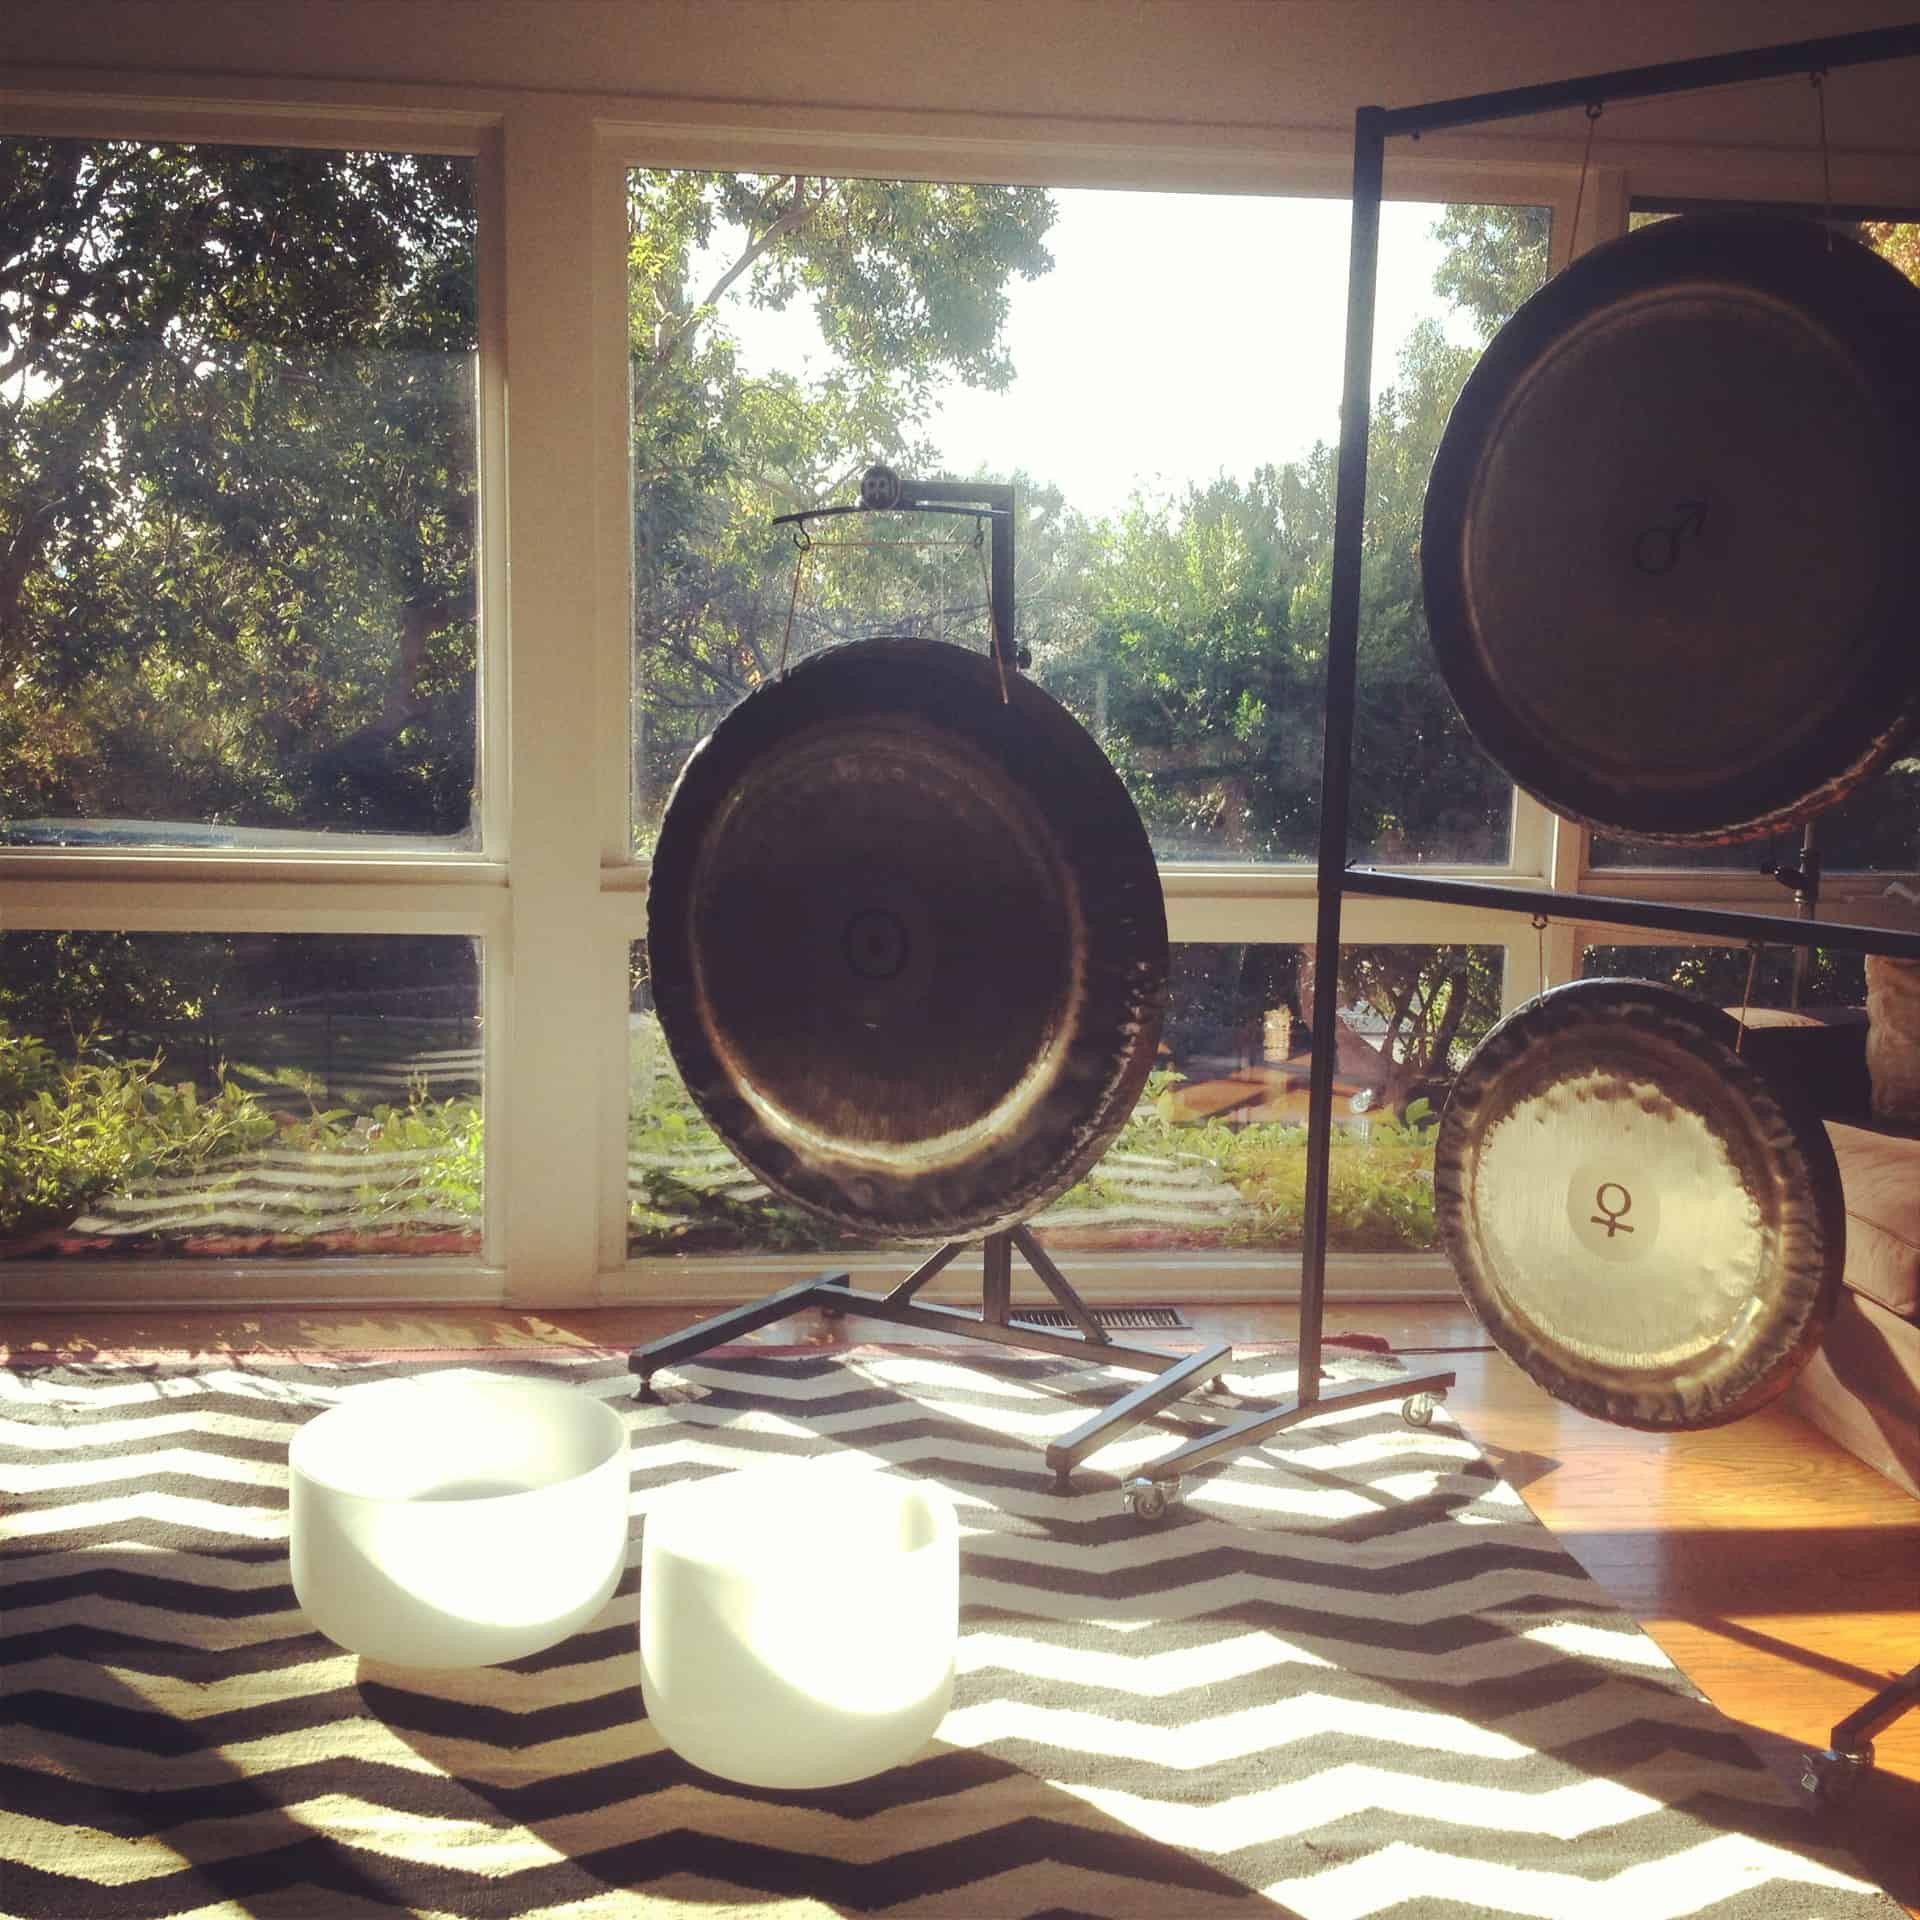 Jamie brings her own gongs and bowls. She set up in my living room.